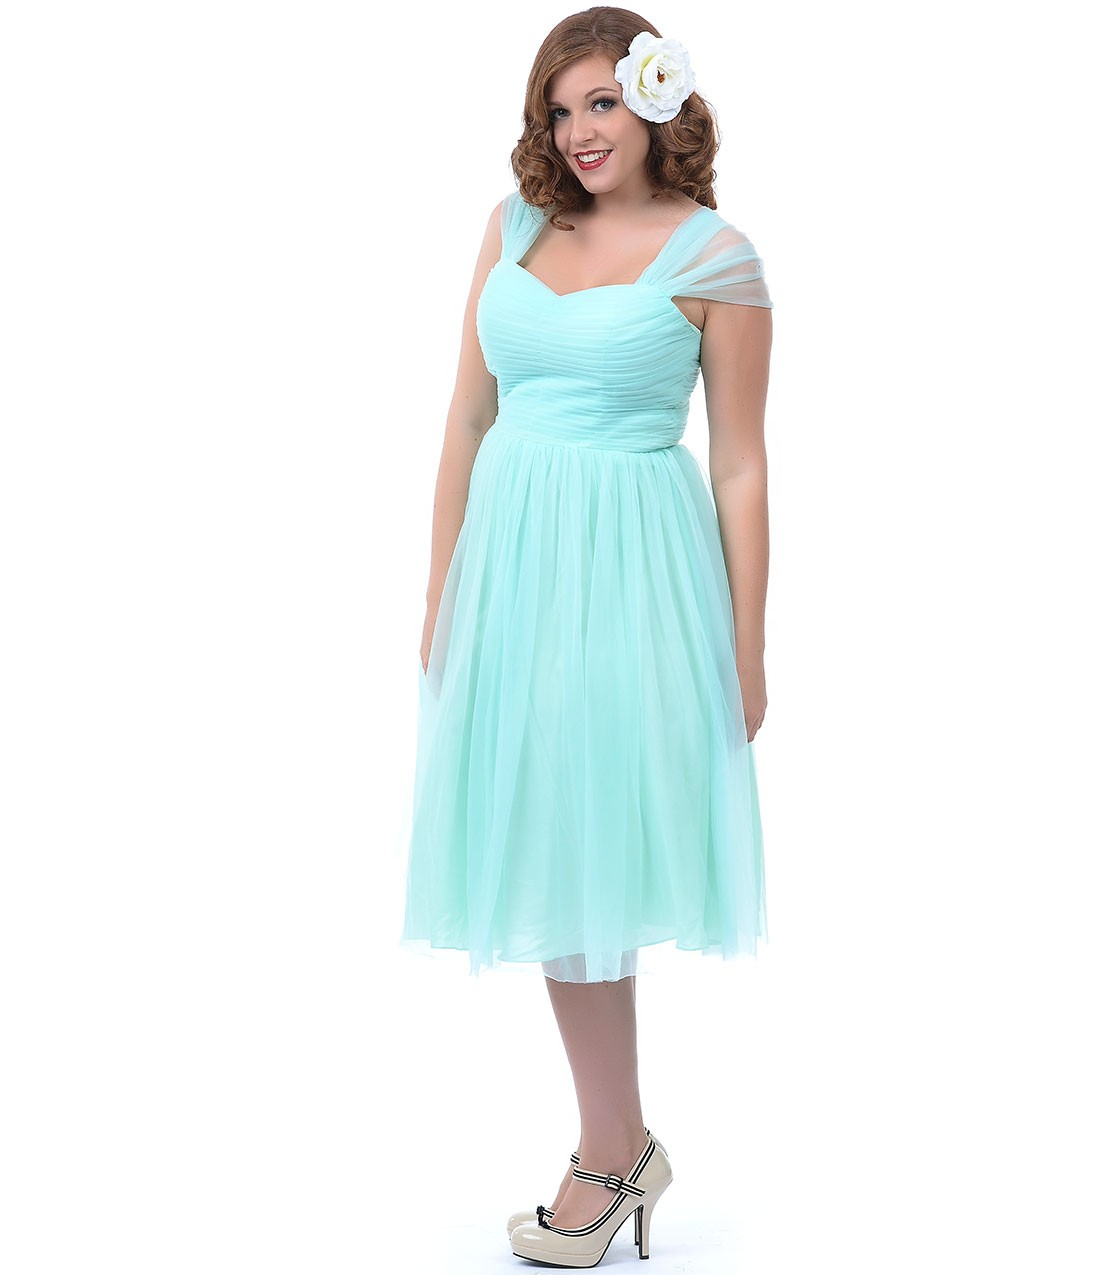 Plus Size Bridesmaid Dresses | Black Party Dresses